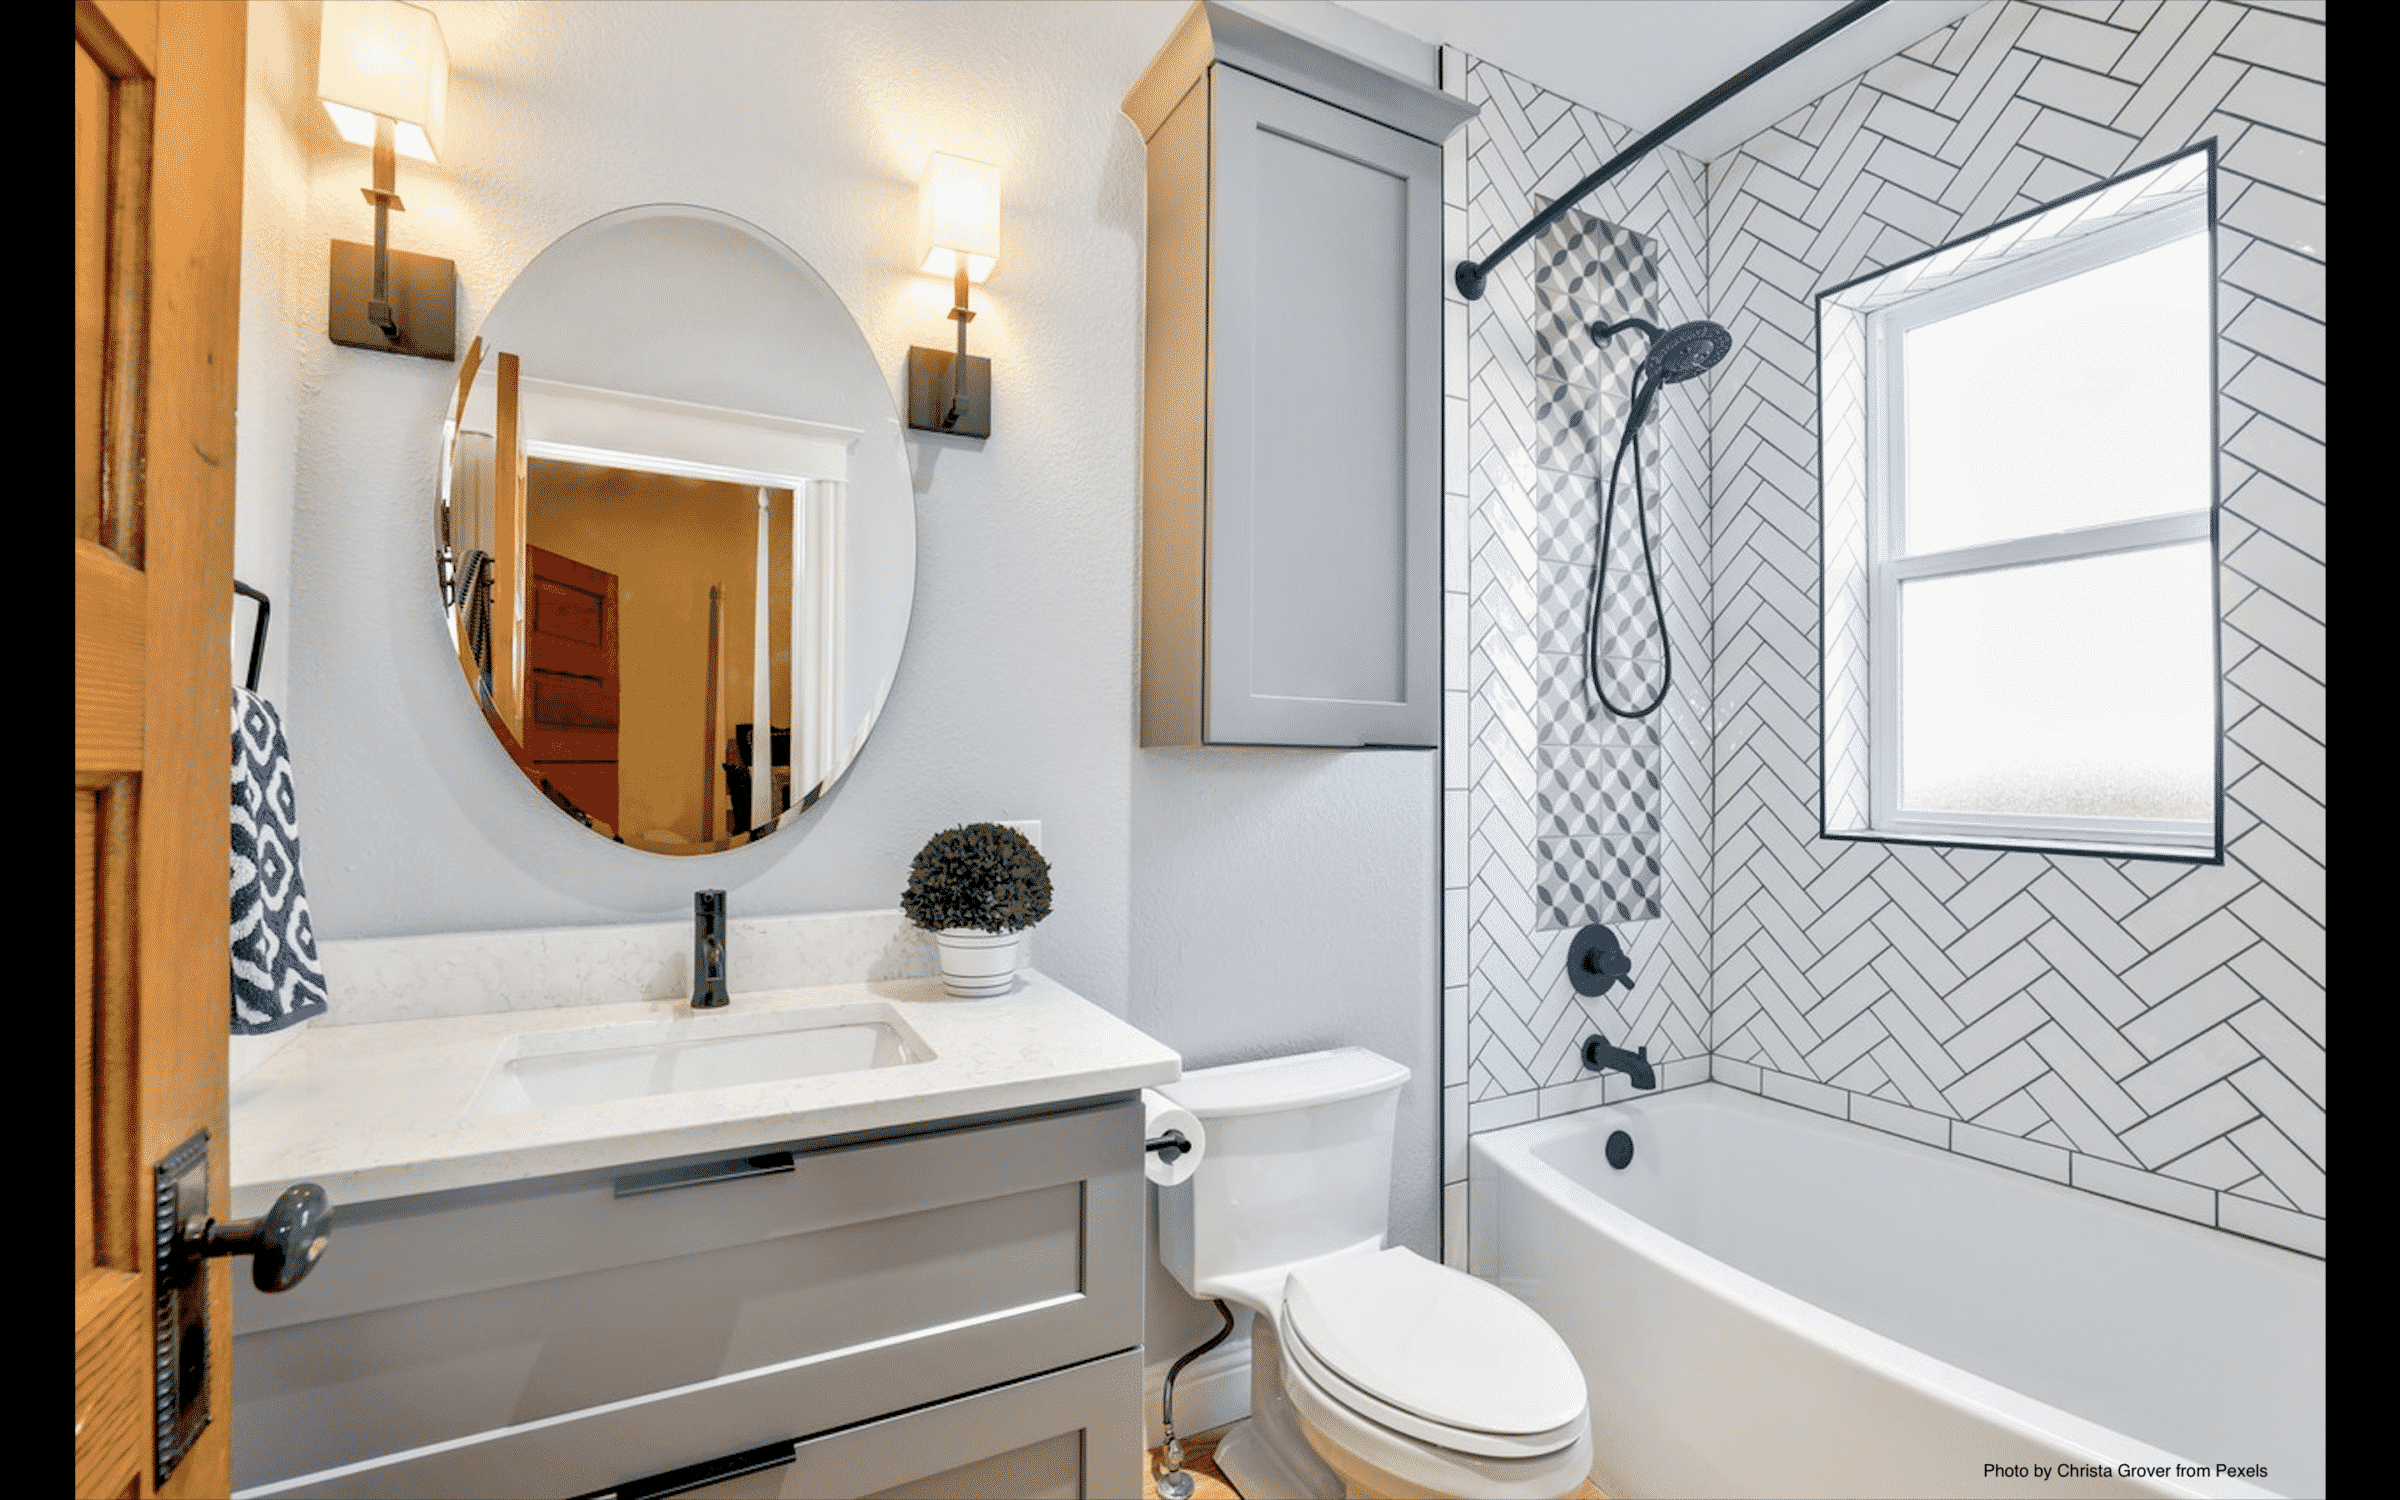 How To Make The Most Of A 5x8 Bathroom Layout With Tips And Tricks